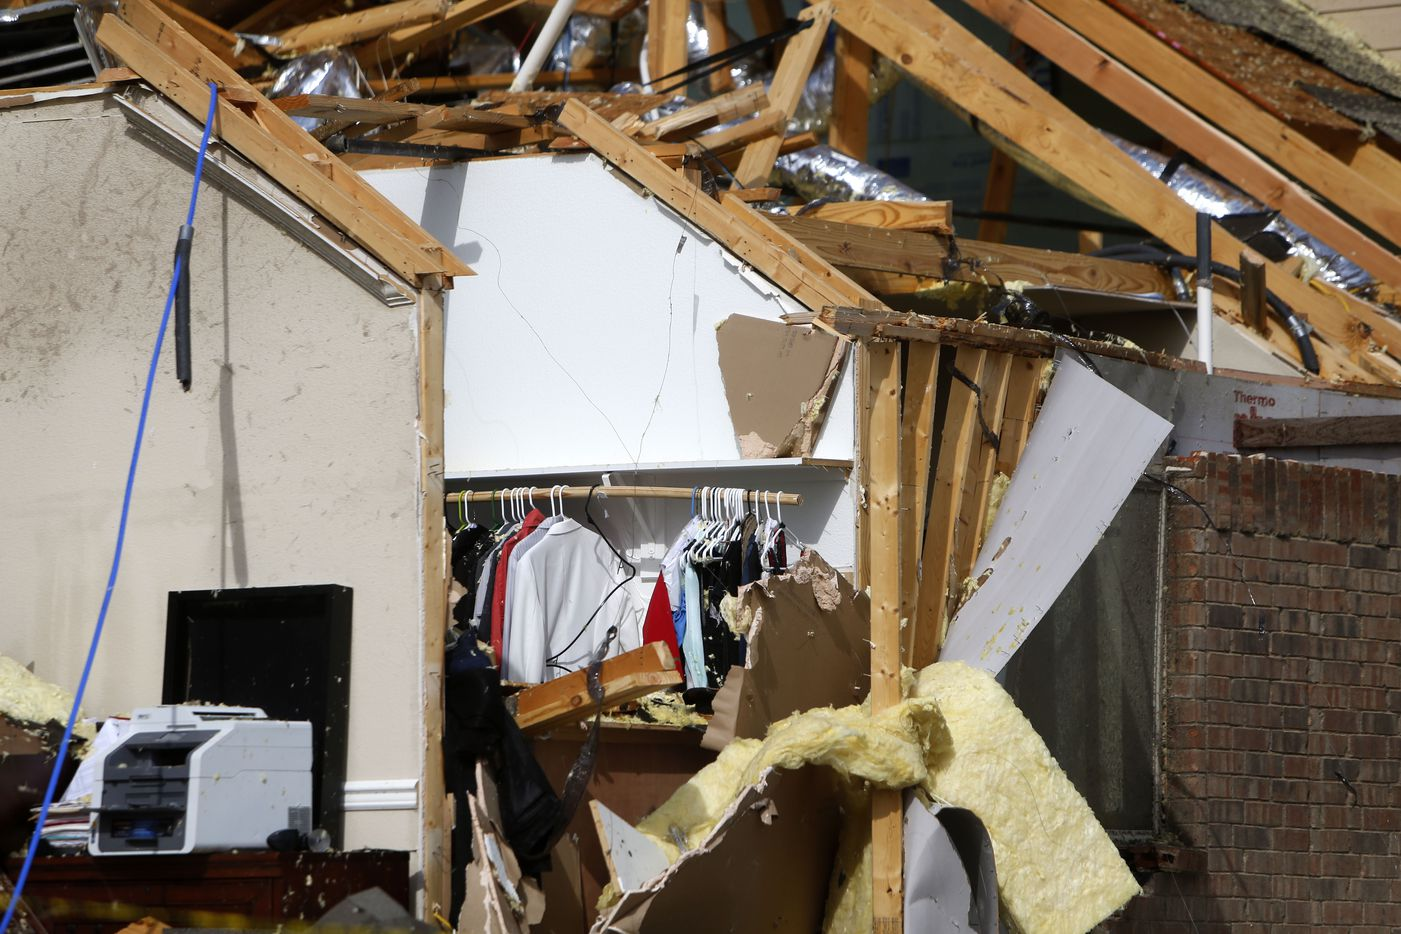 A damaged home along Panhandle Drive following a storm in the early hours of the morning in Rockwall, Texas on Wednesday, March 29, 2017. (Rose Baca/The Dallas Morning News)